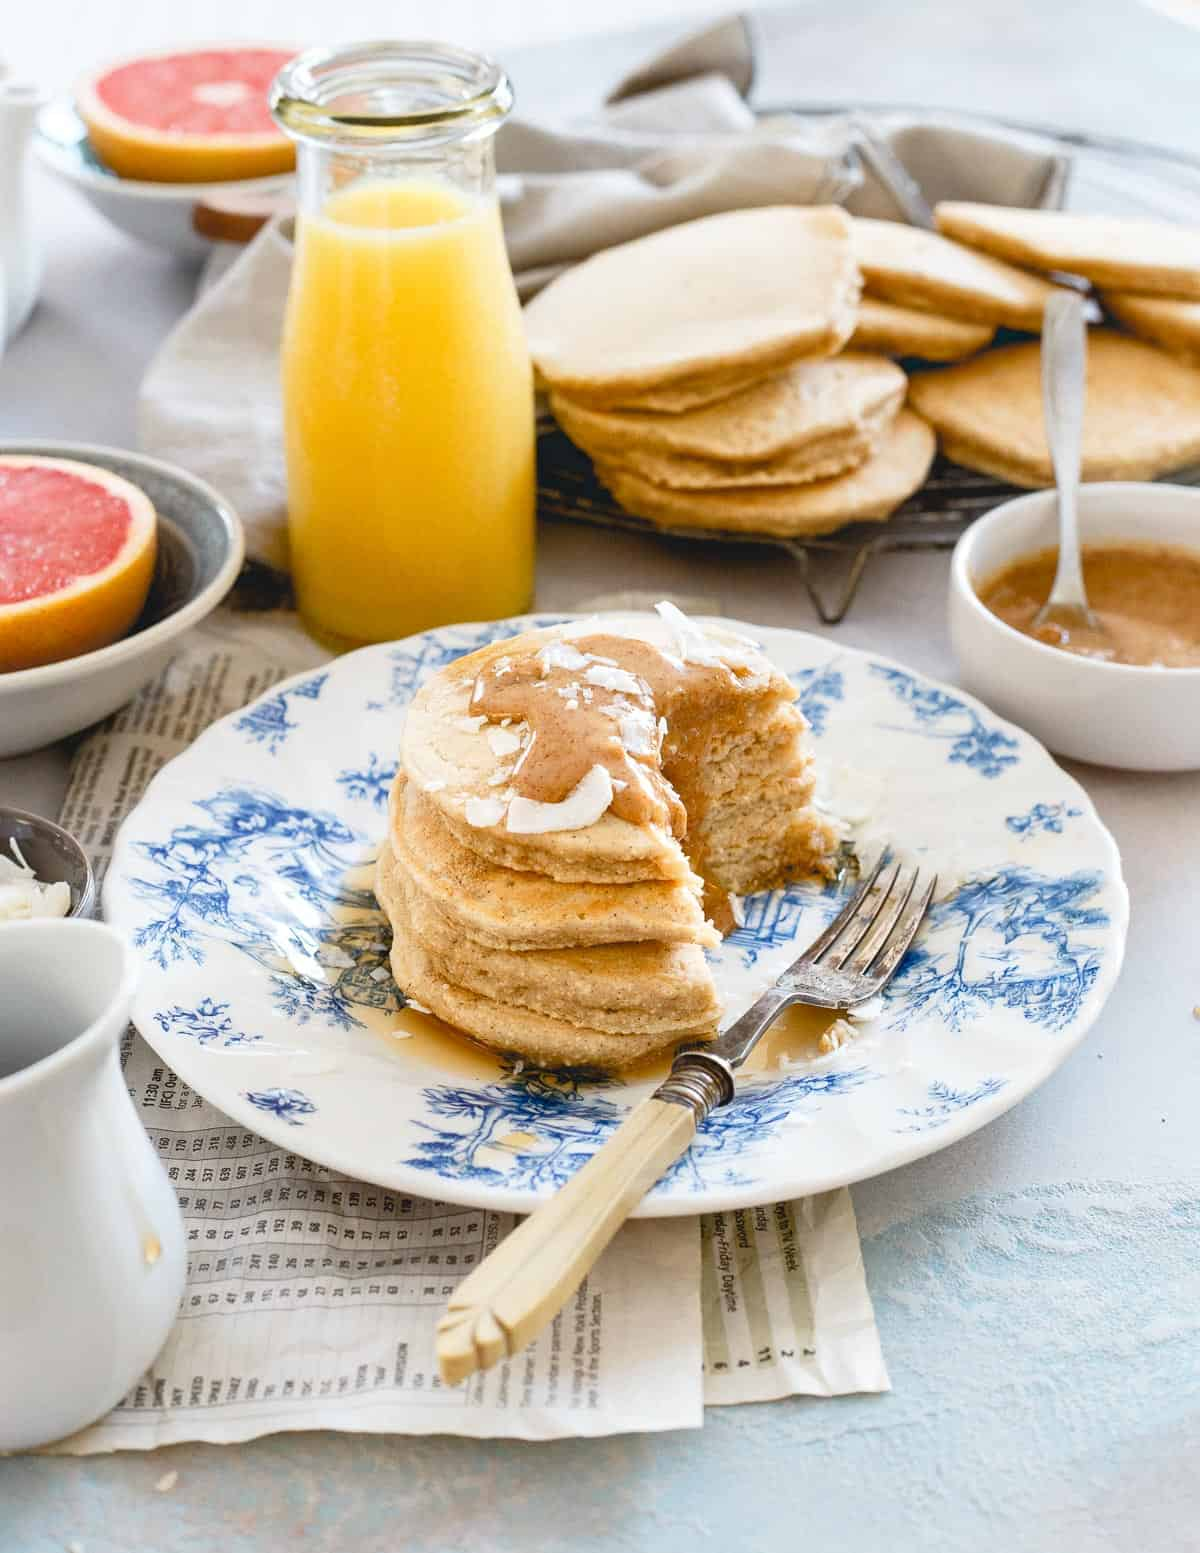 A few extra minutes to make these coconut flour pancakes from scratch are well worth it once you take the first bite!